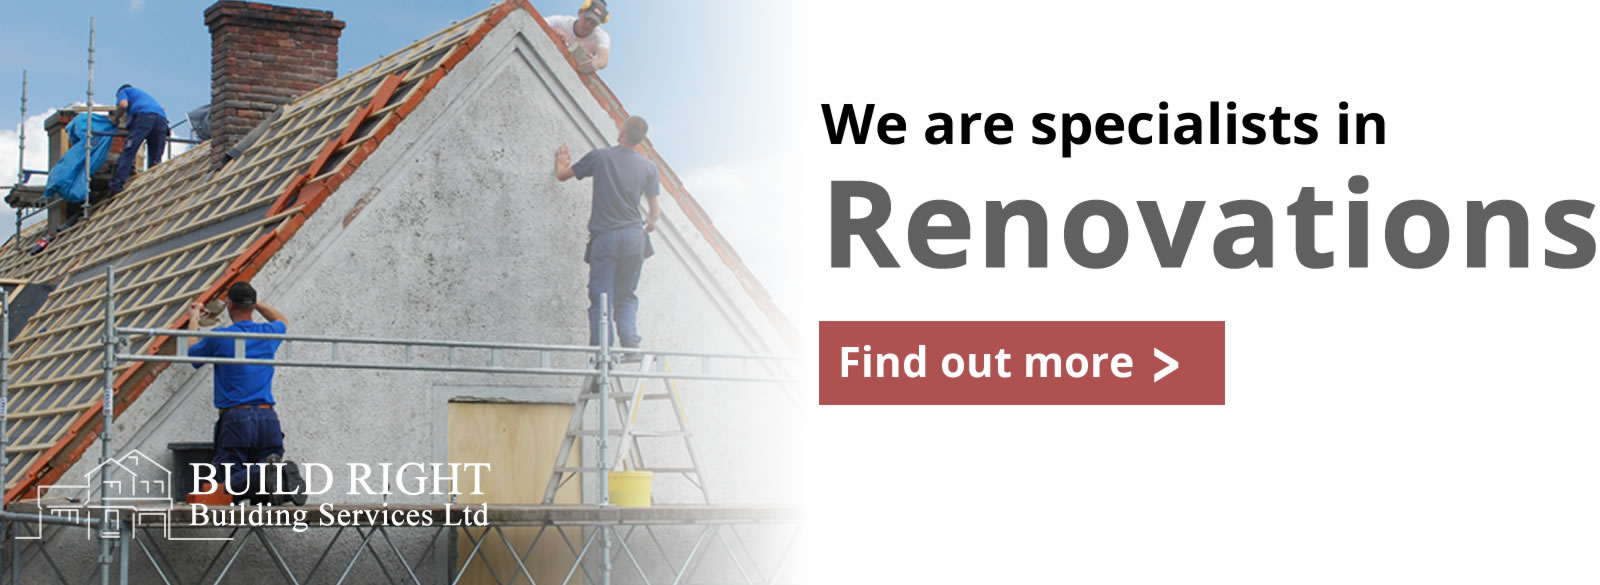 Build Right Building Services Ltd - Home renovations and repairs